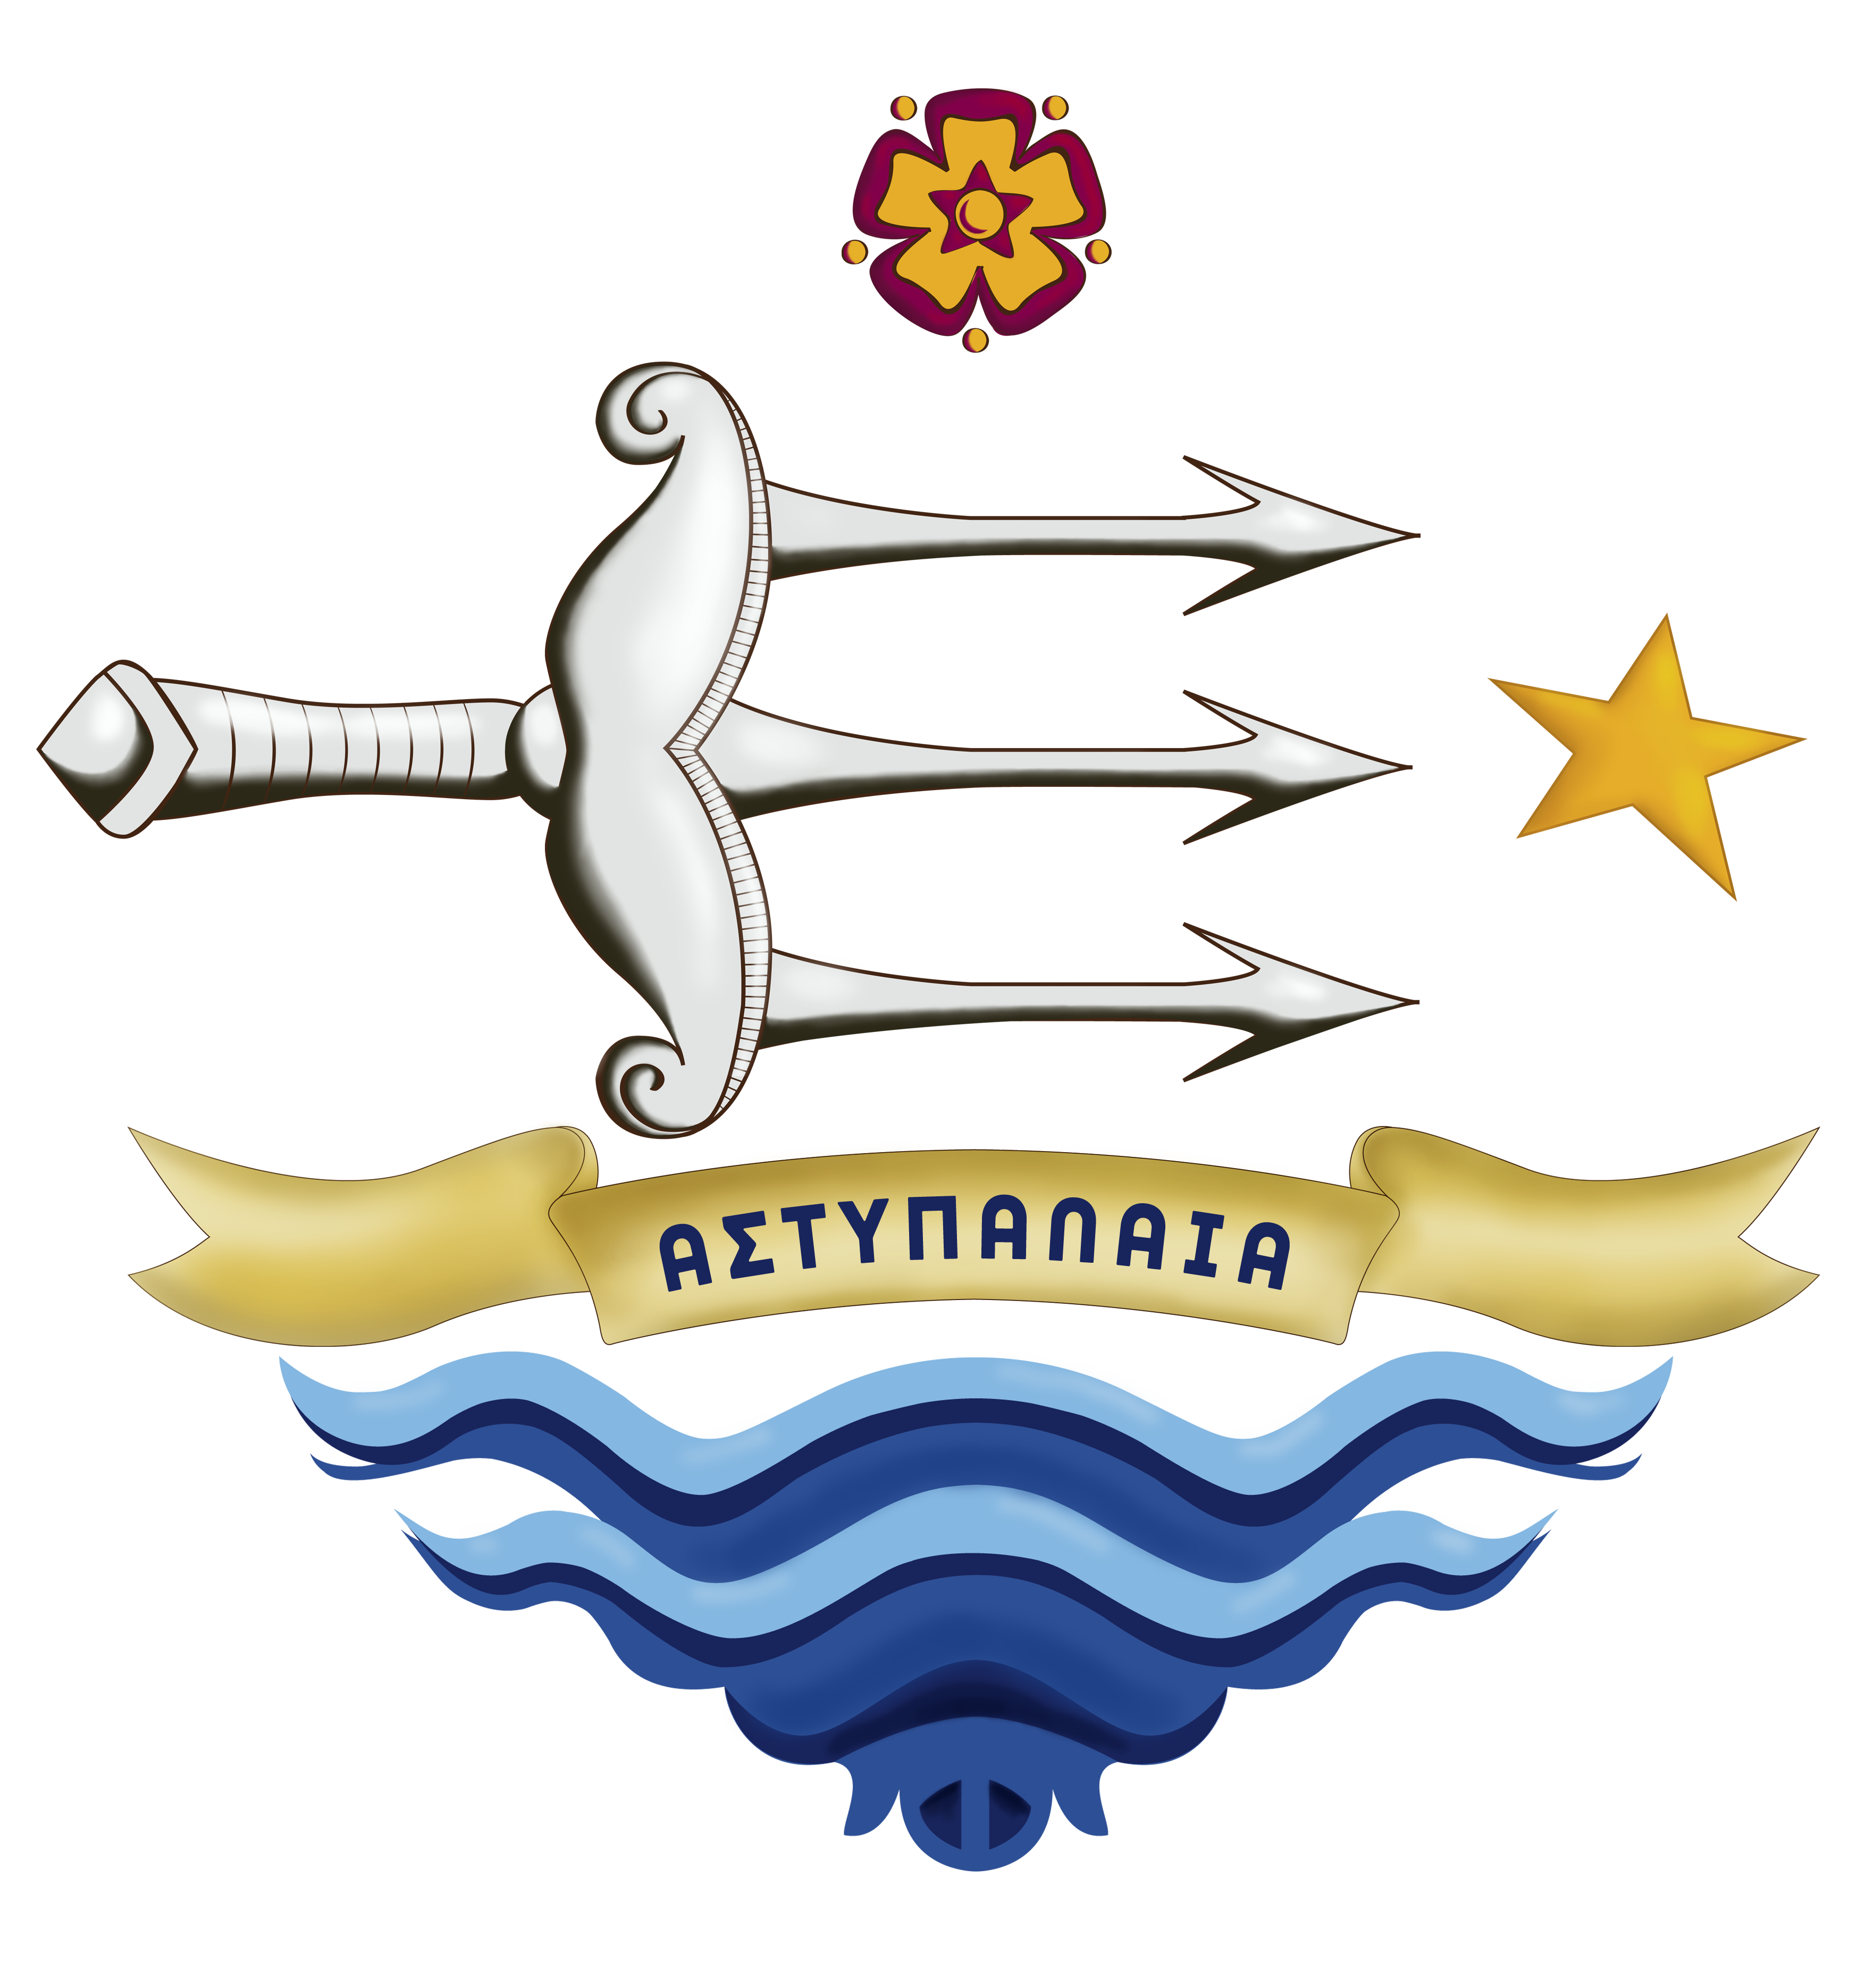 MUNICIPALITY OF ASTYPALEA